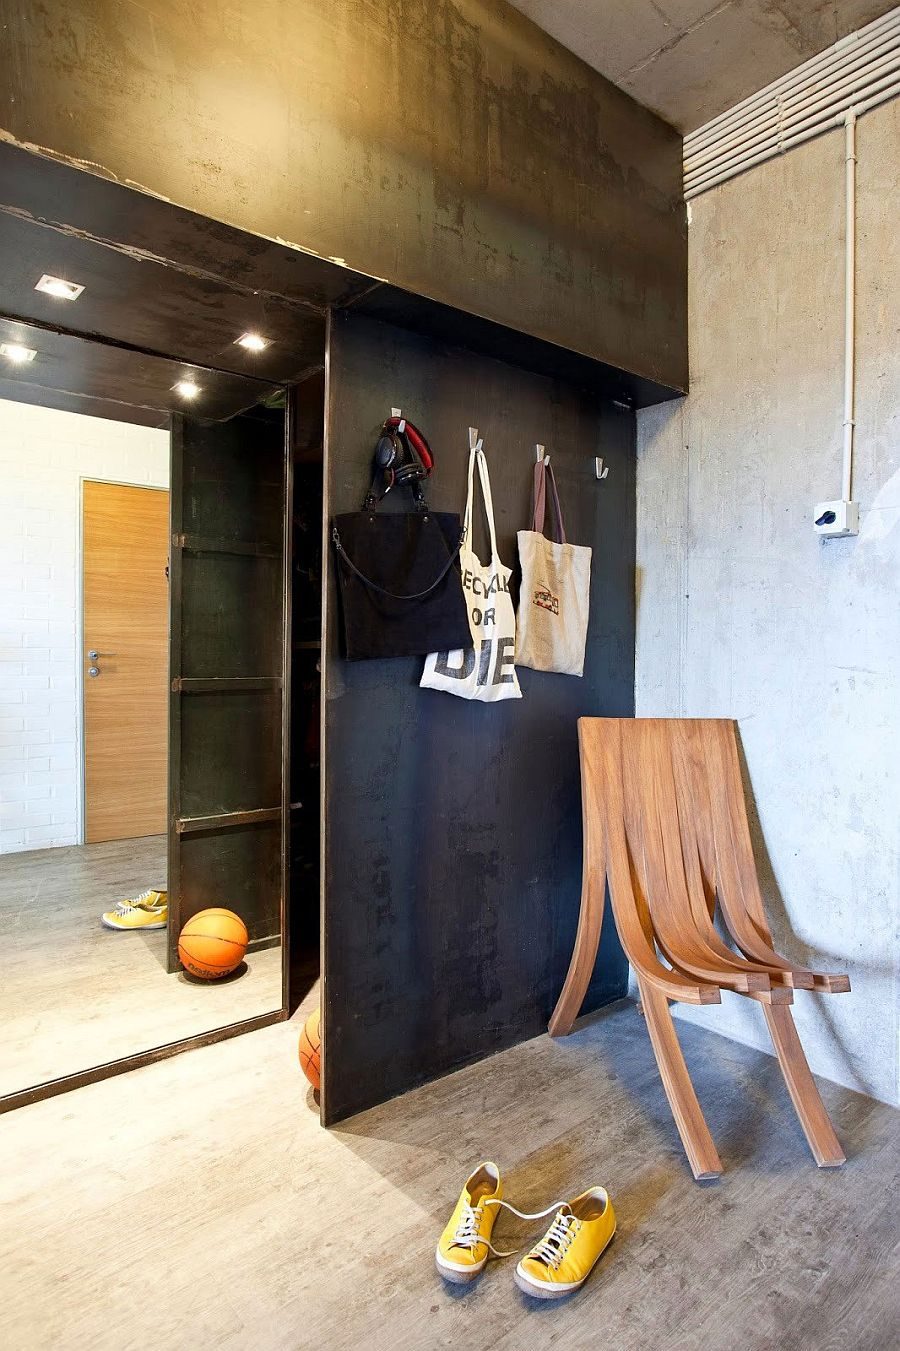 Black metal wall separates the living space from the entrance